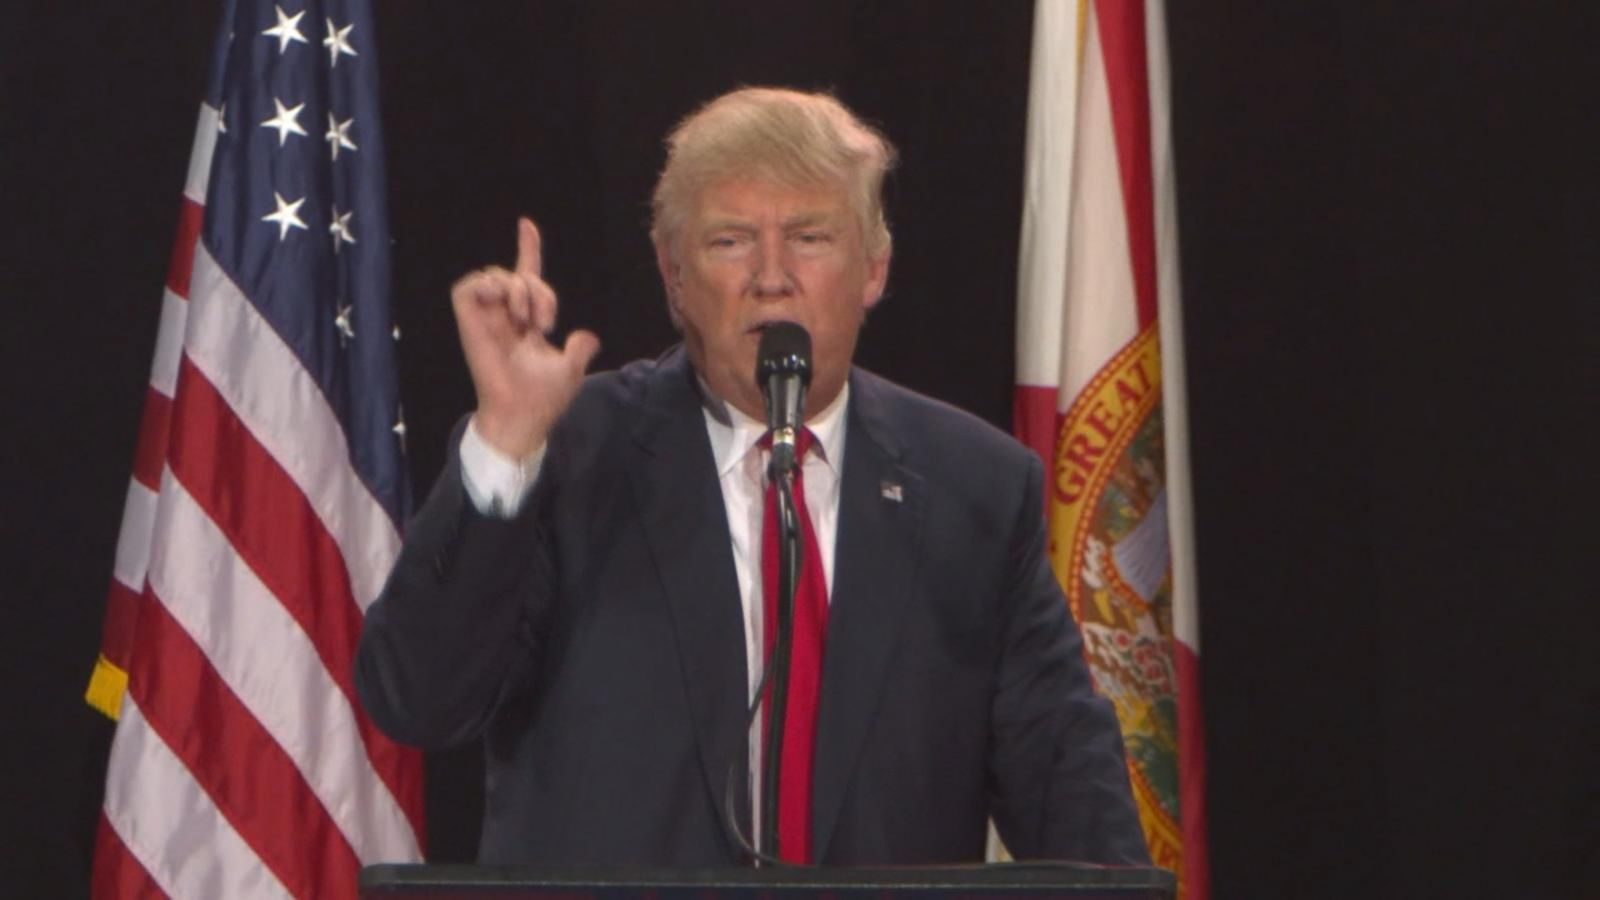 Speaking at a rally in Tampa, Florida, Trump jumped on the news that average premiums under the Affordable Care Act will go up sharply.